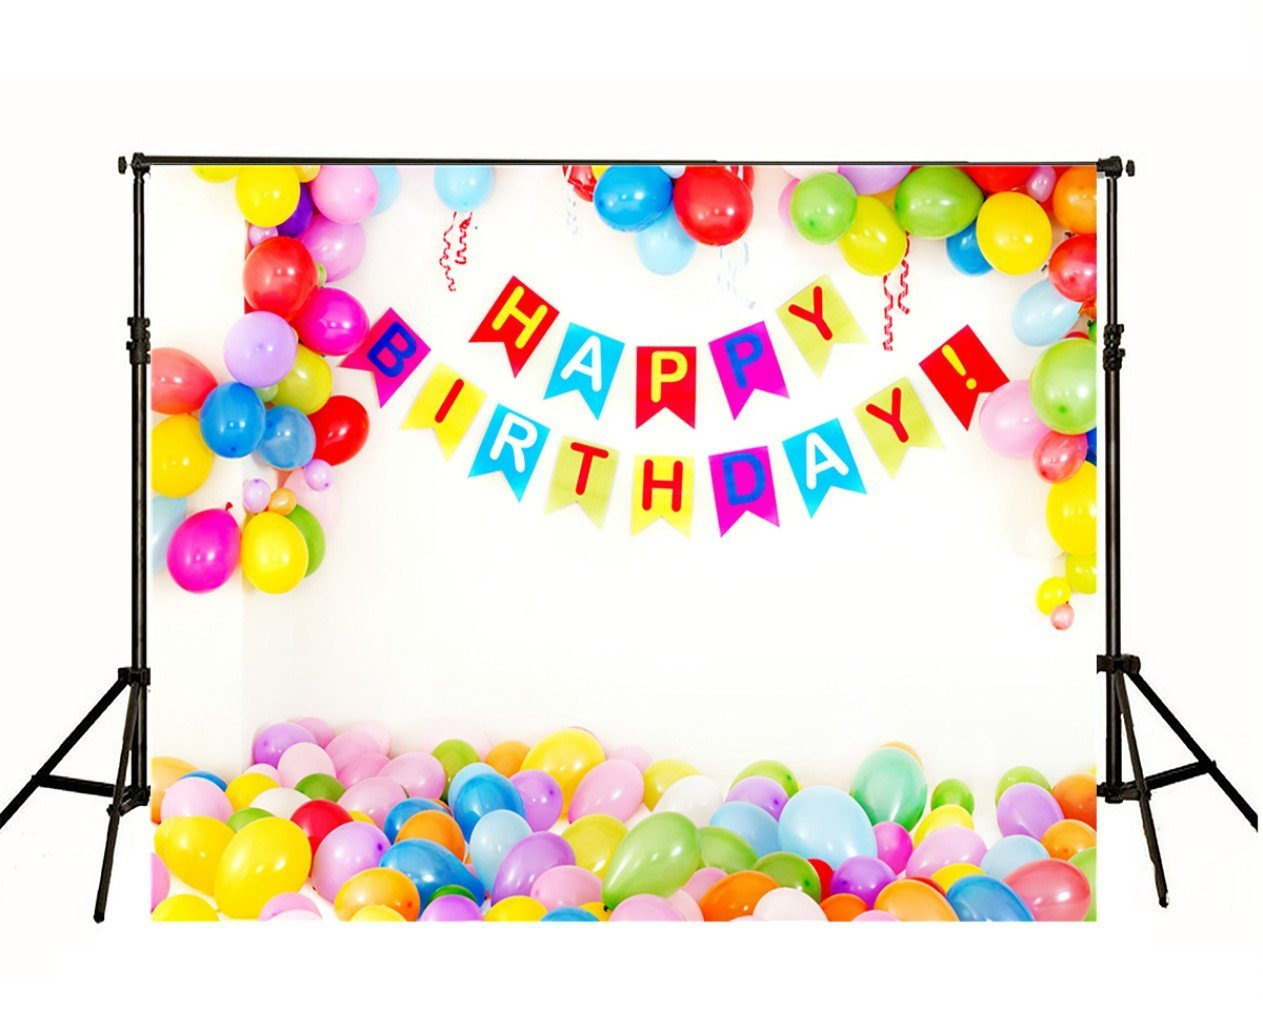 Happy Birthday Photographic Backgrounds Colorful Balloons Children Kids Party Backdrops Photography Booth Studio Shoot Wallpaper Props